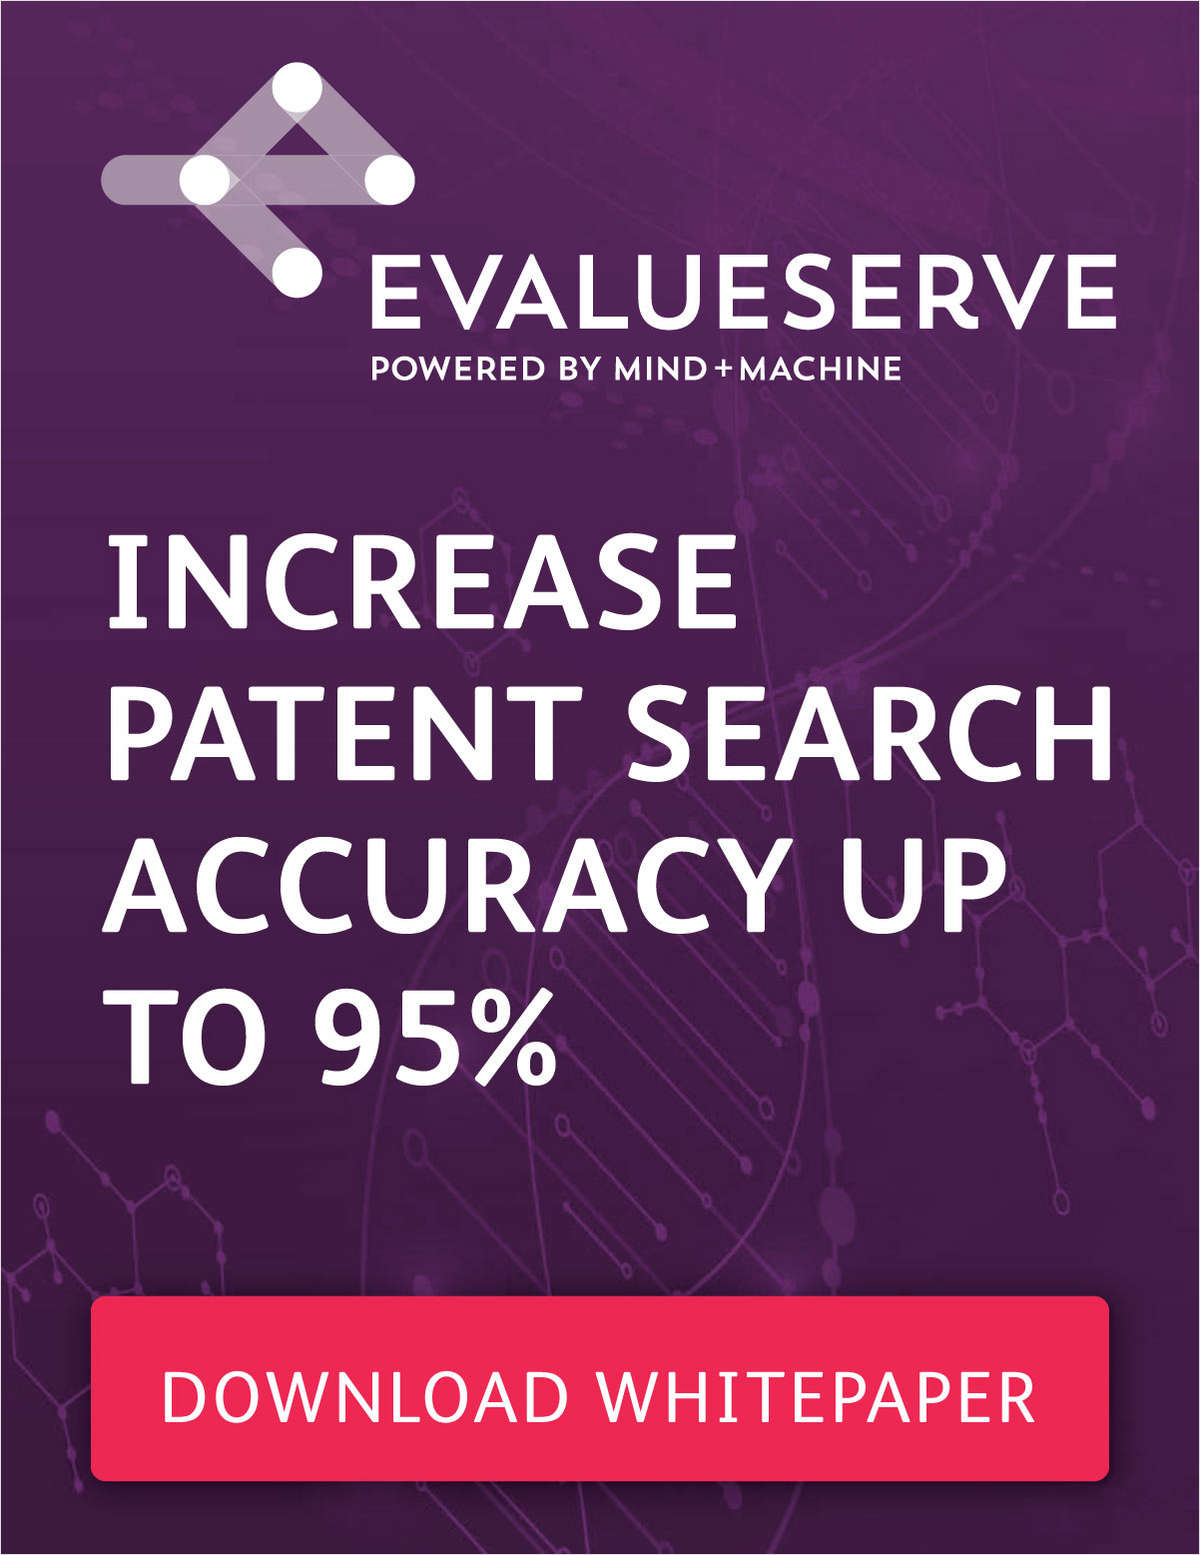 Increase Patent Search Accuracy Up To 95% With Evalueserve